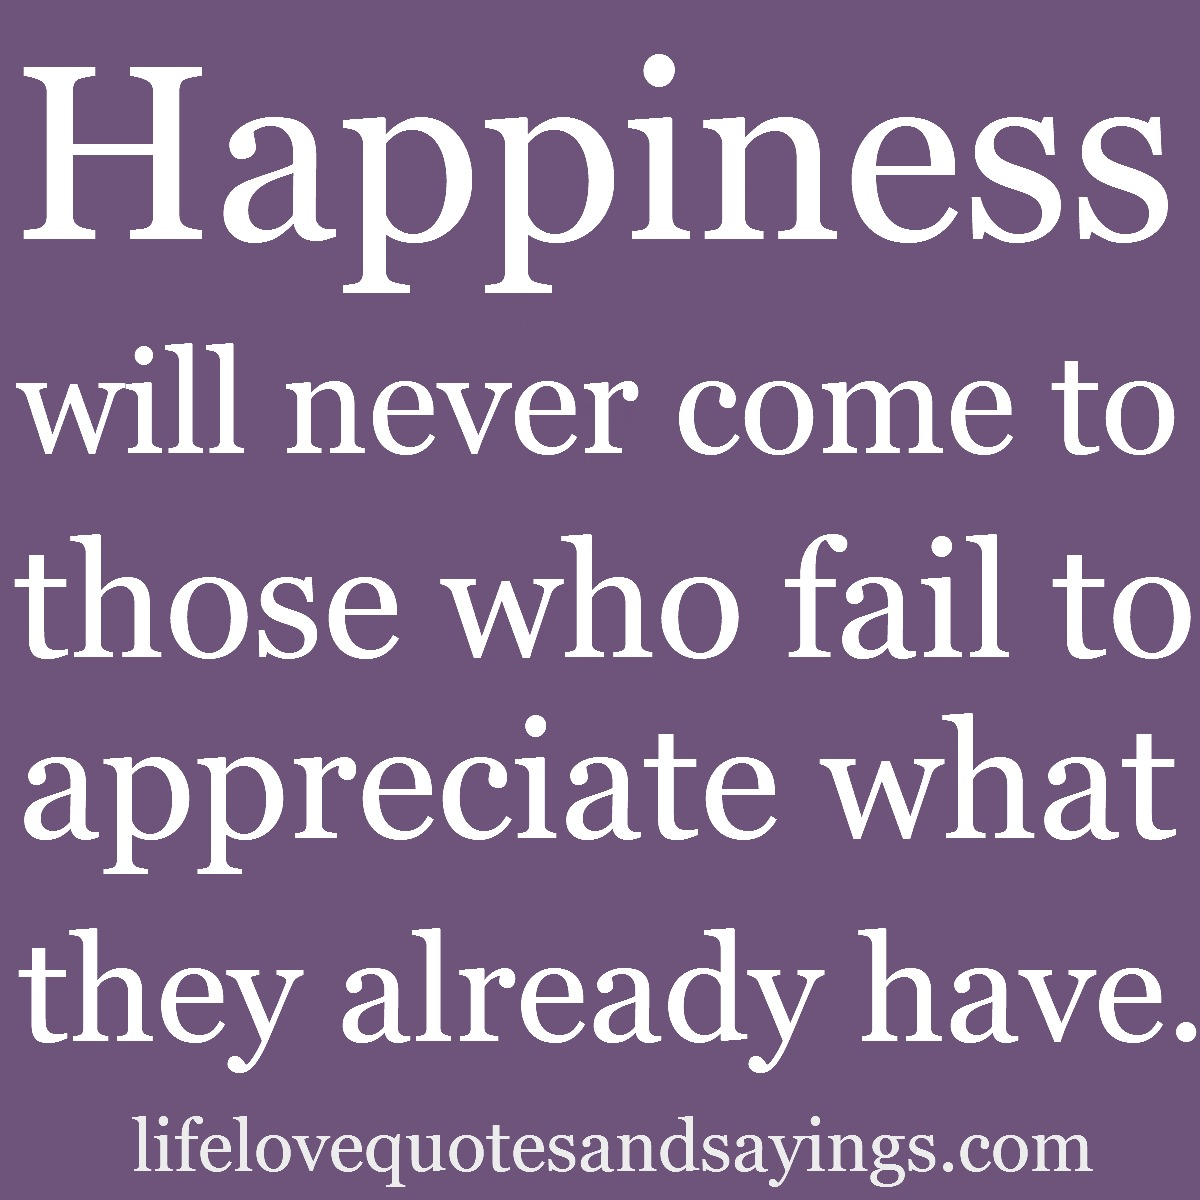 True Happiness Love Quotes: True Happiness Quotes And Sayings. QuotesGram